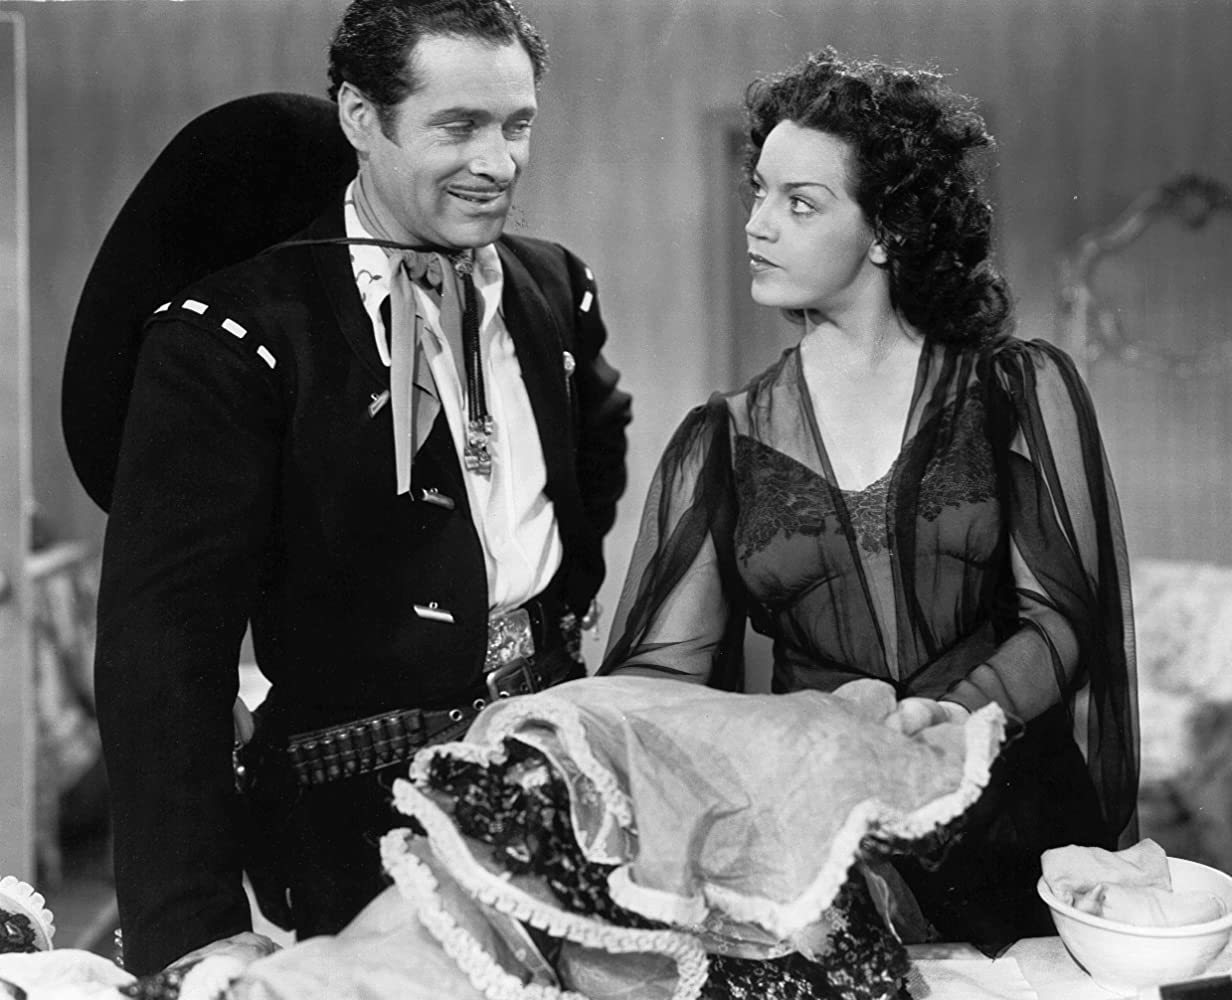 Duncan Renaldo and Aurora Roche in The Cisco Kid in Old New Mexico (1945)